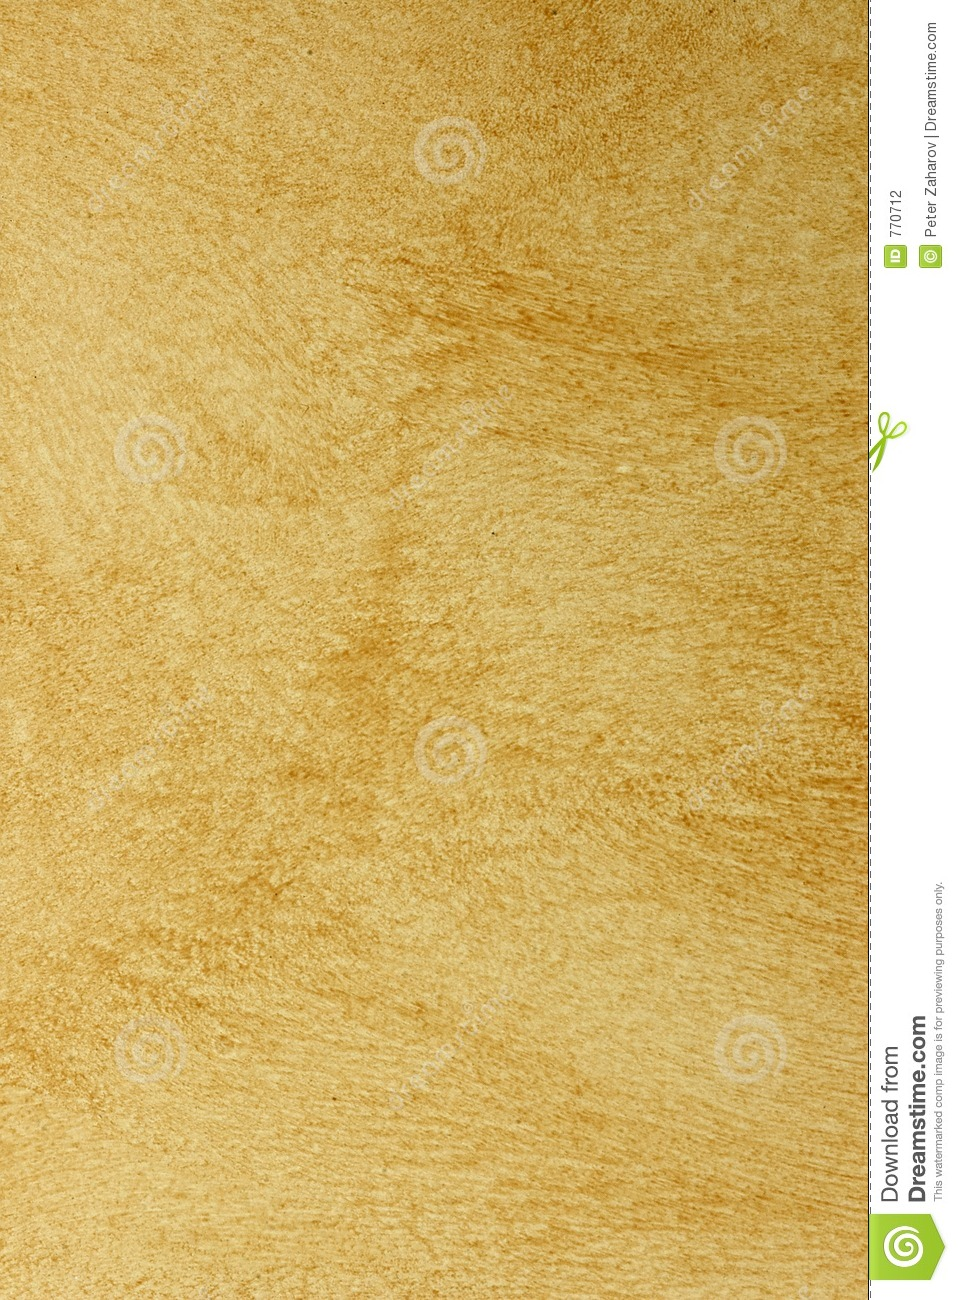 Yellow-brown design paint texture